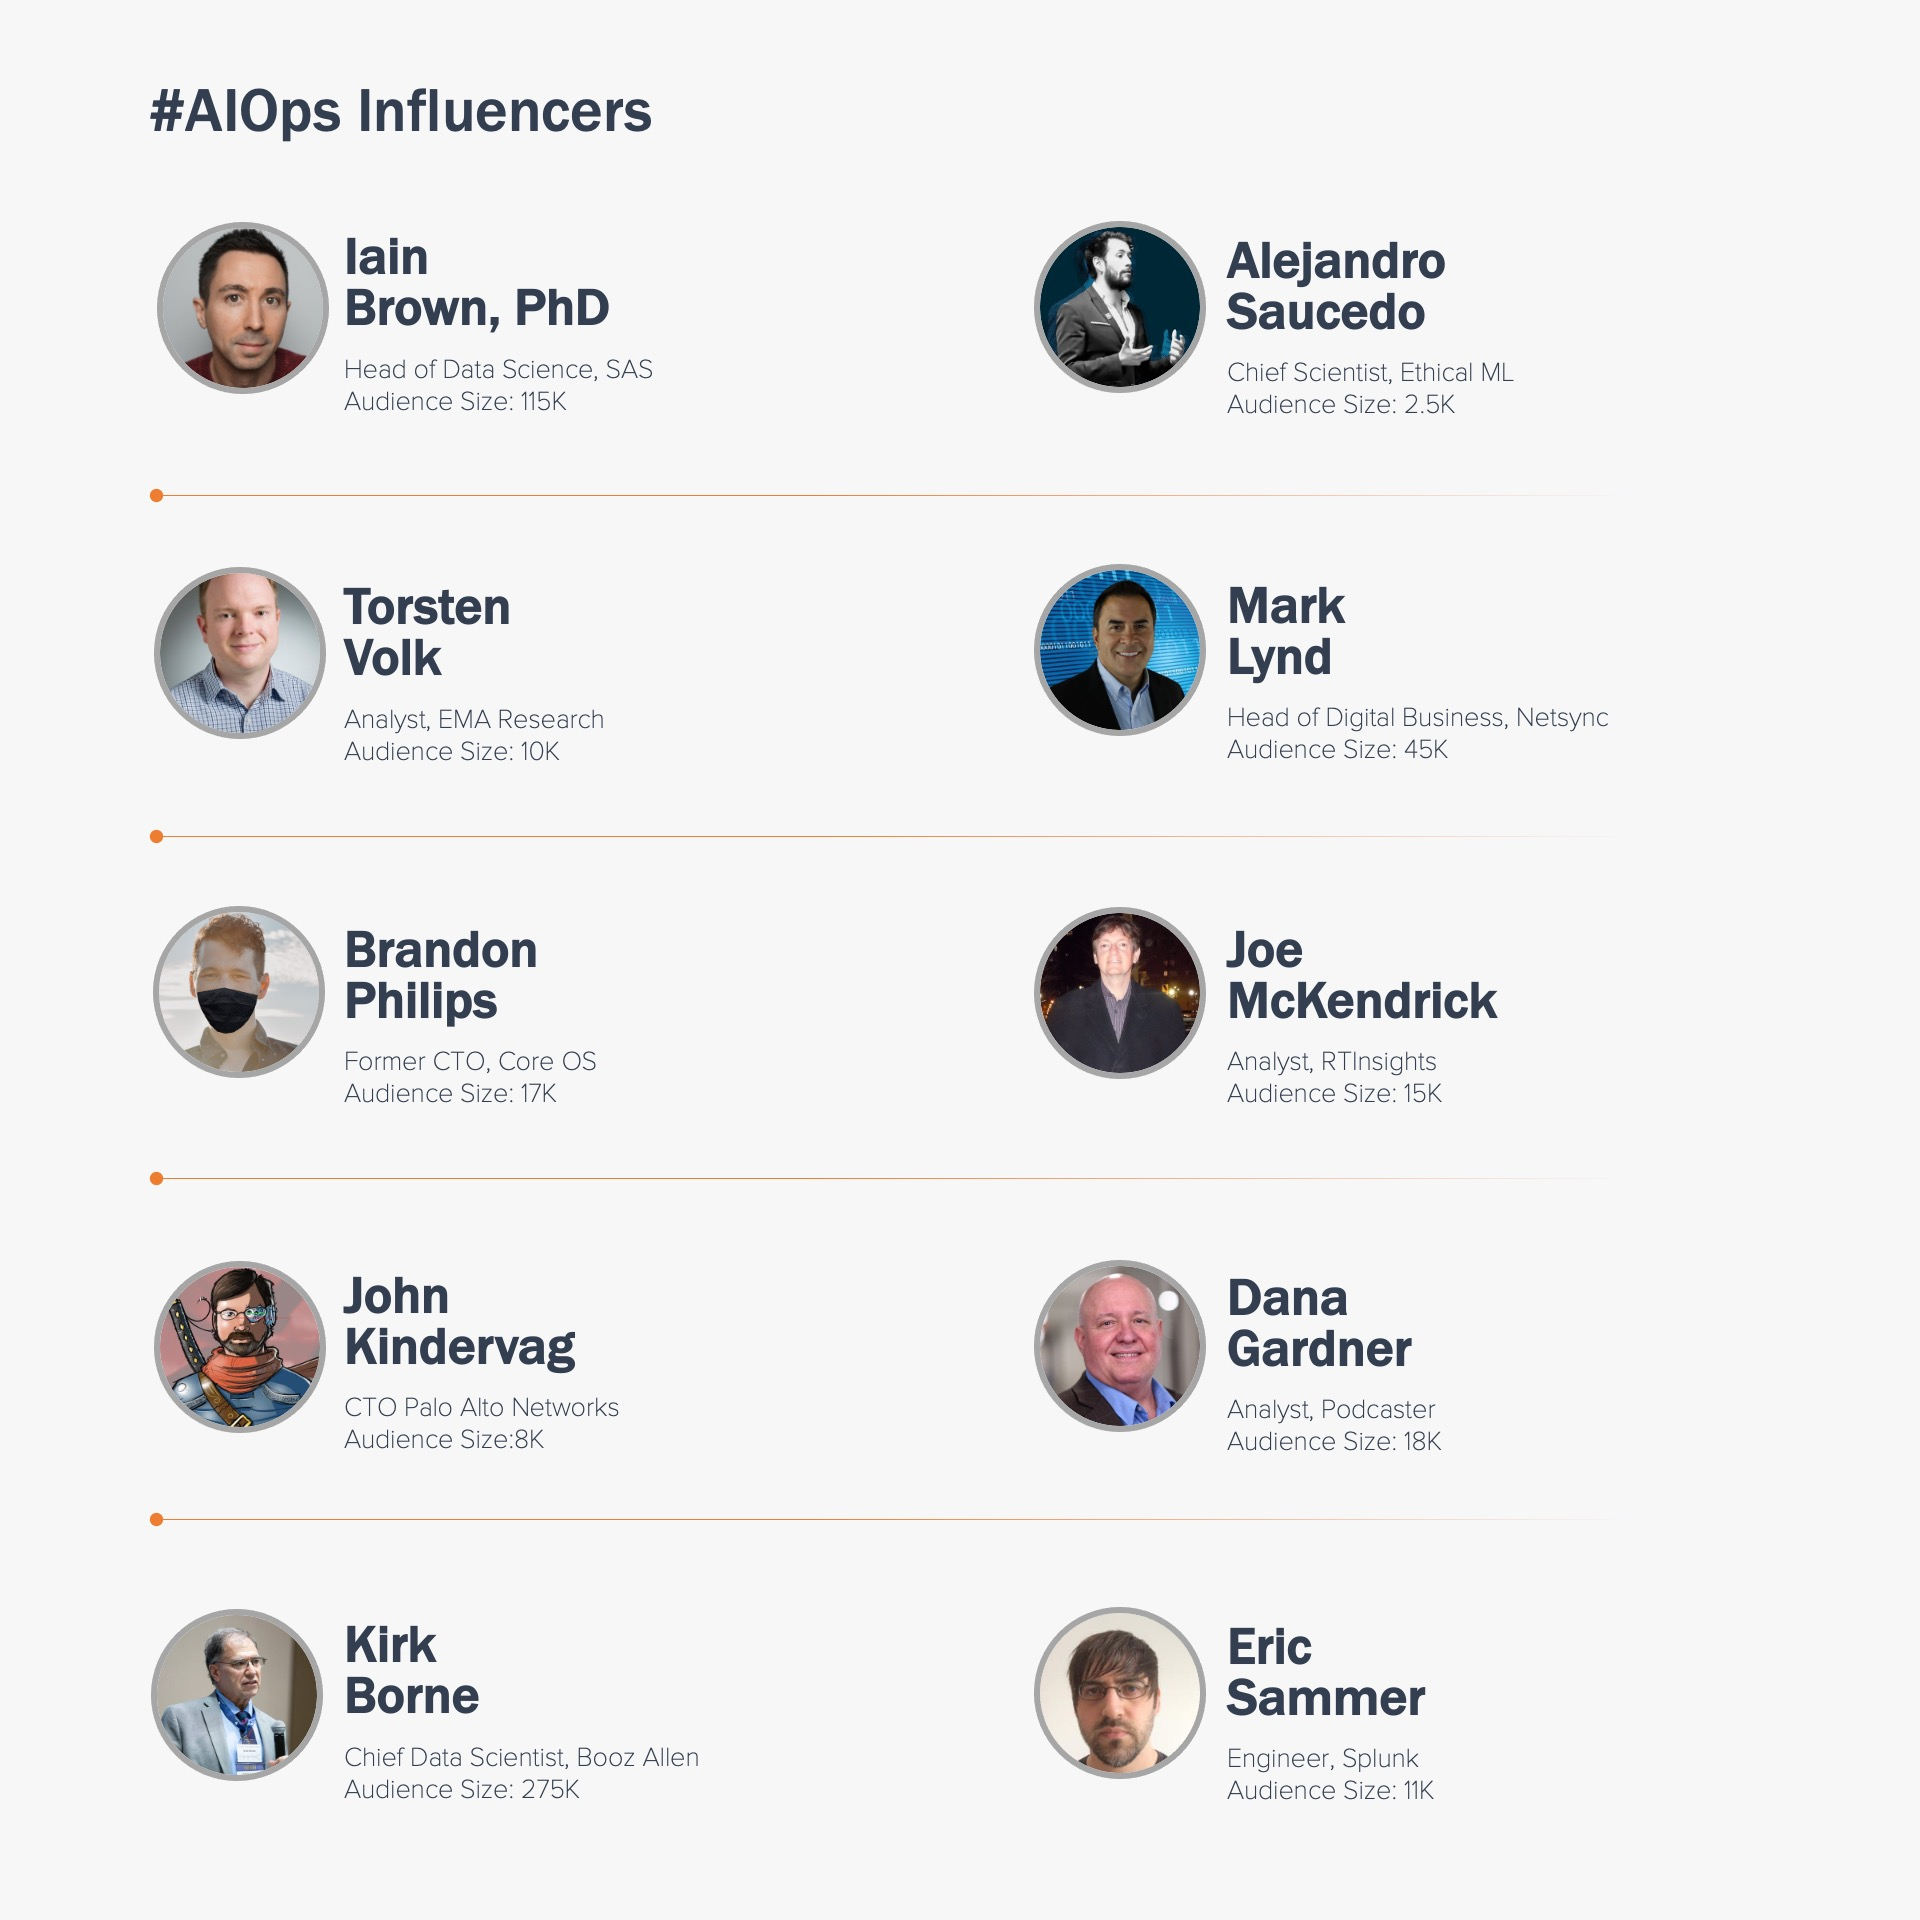 AIOps Influencers